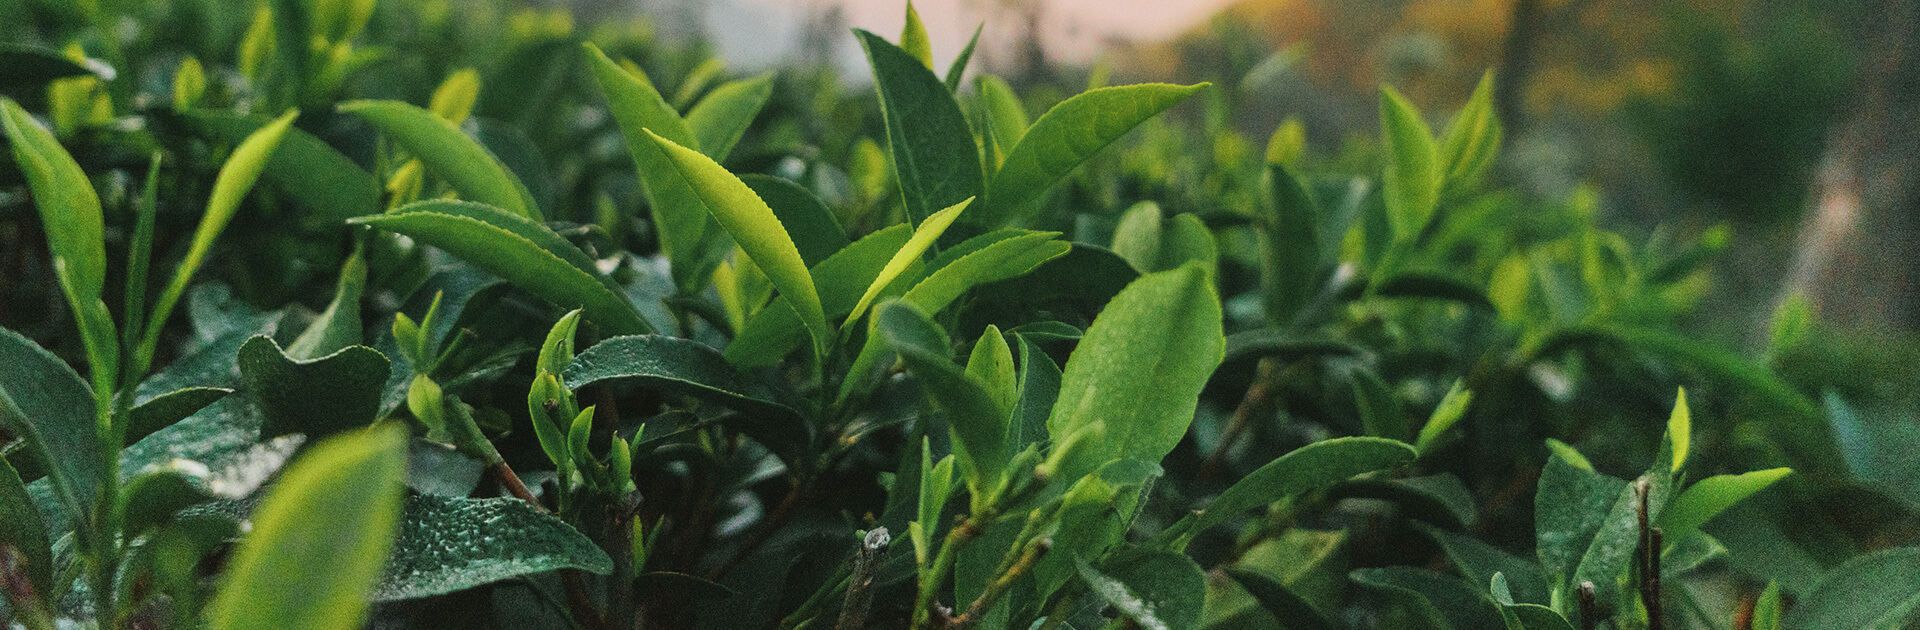 Instant tea extract production process